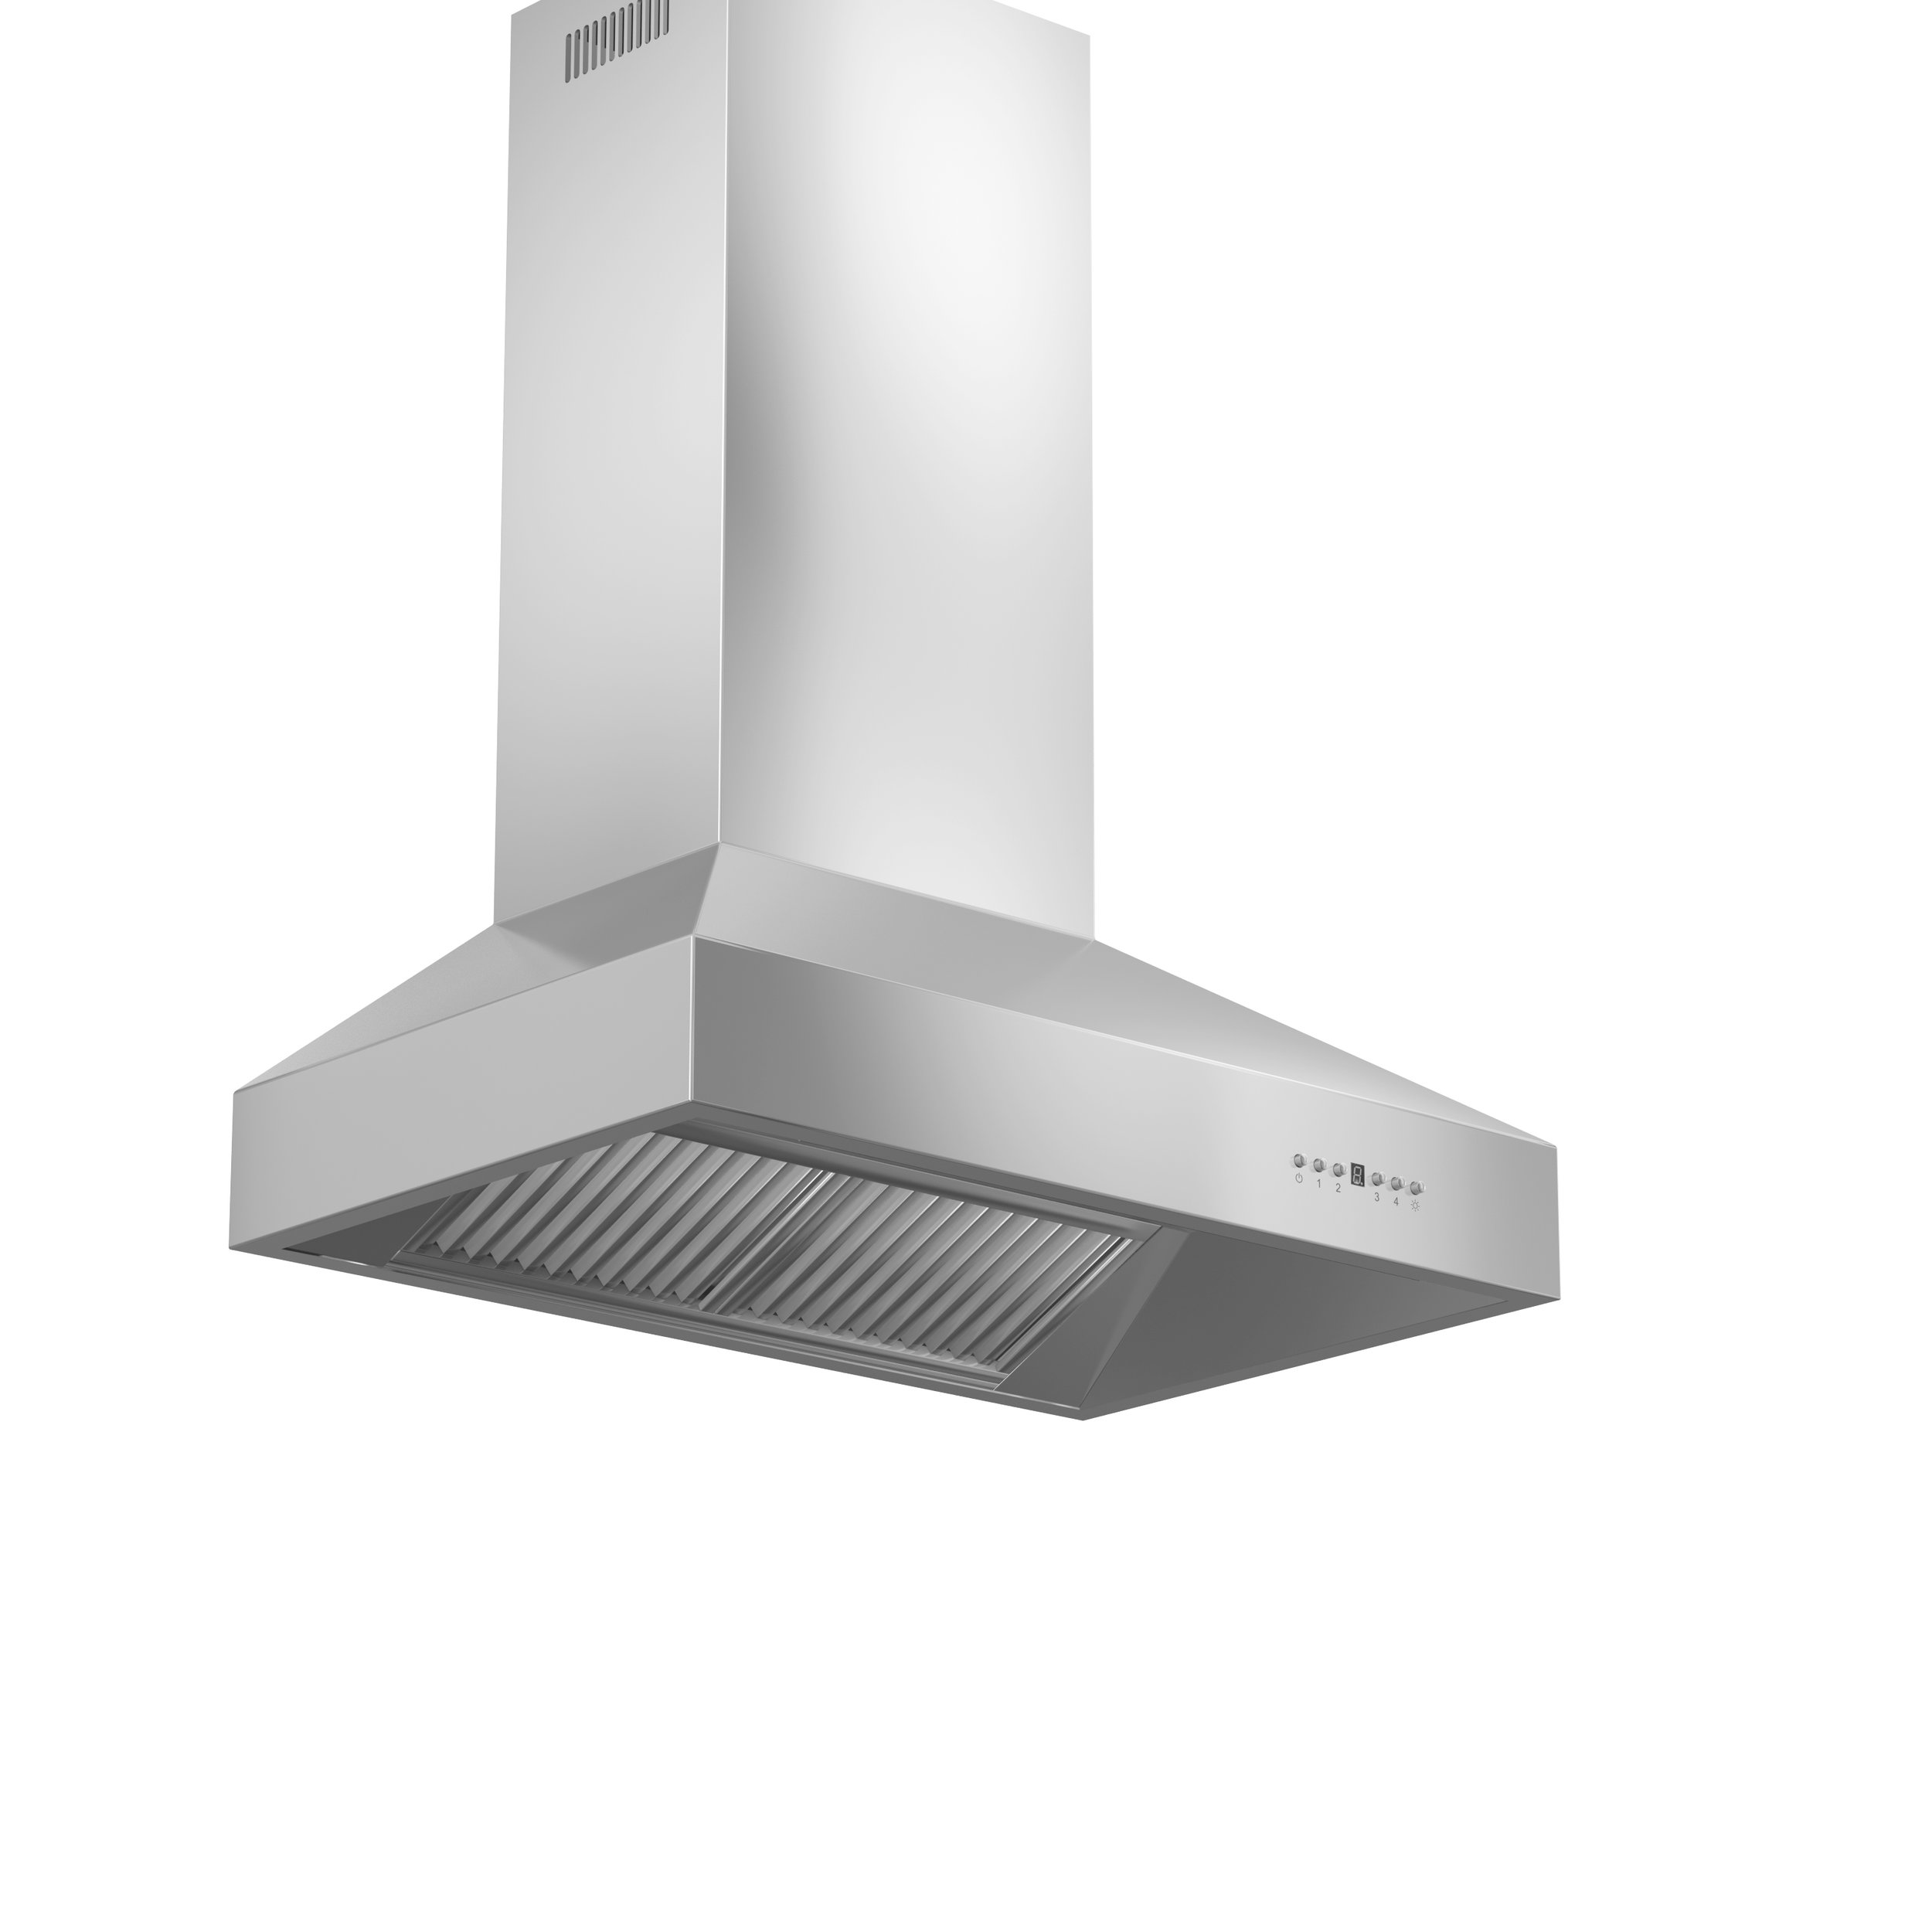 zline-stainless-steel-wall-mounted-range-hood-697-side-under.jpg